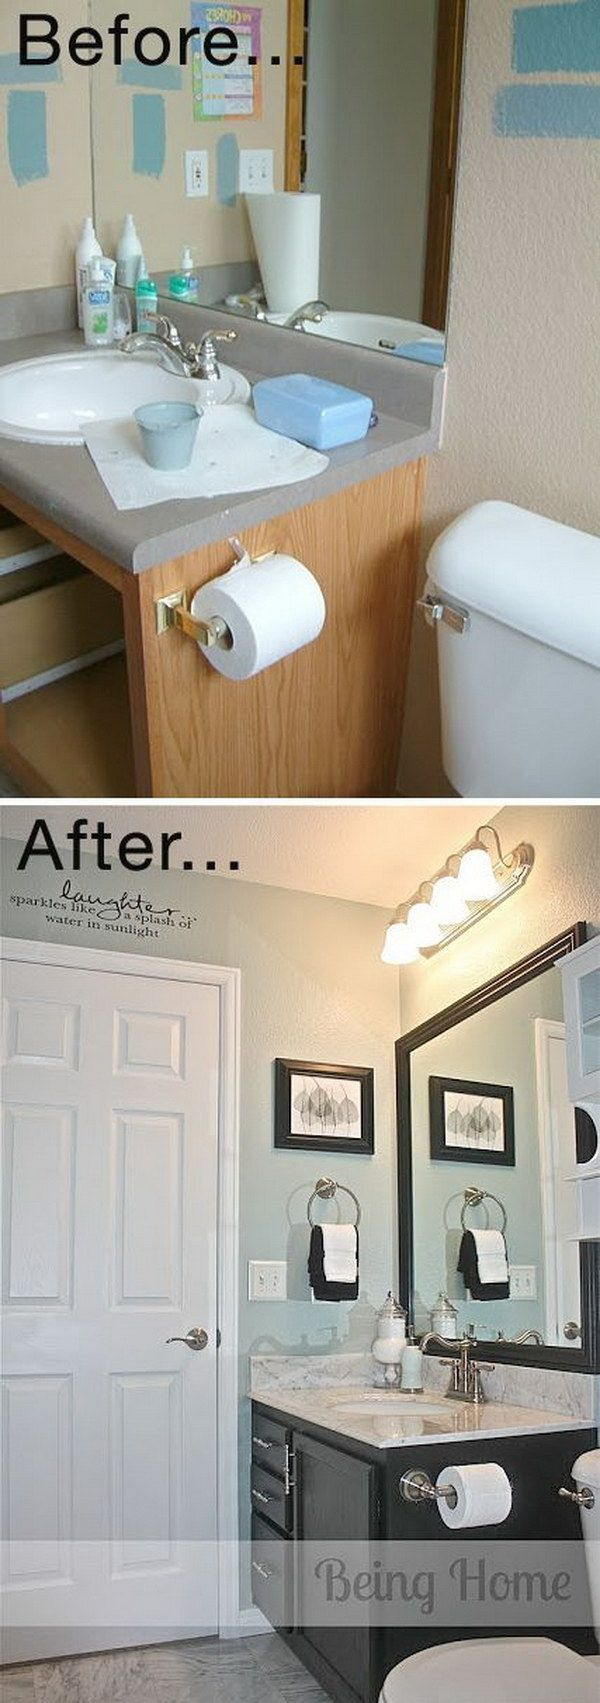 25 best ideas about cheap bathroom makeover on pinterest cheap floating shelves floating shelves diy and walnut shelves